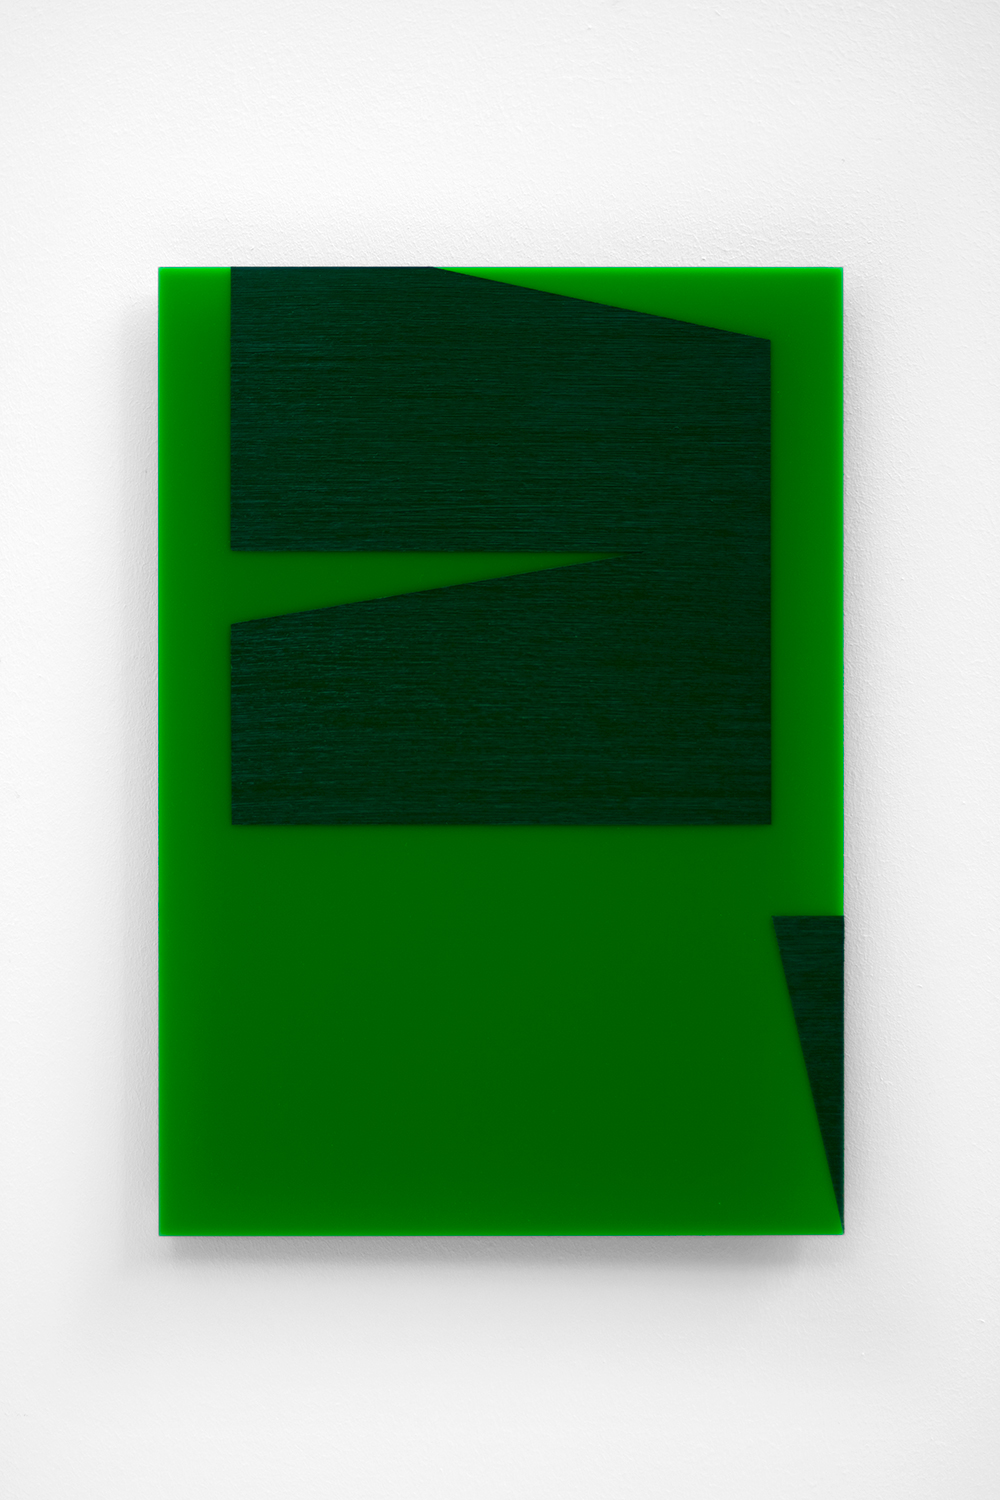 The Green Series nr. 12 42 x 29,7 cm ( A3 Size ) Oil and arylic on green perspex